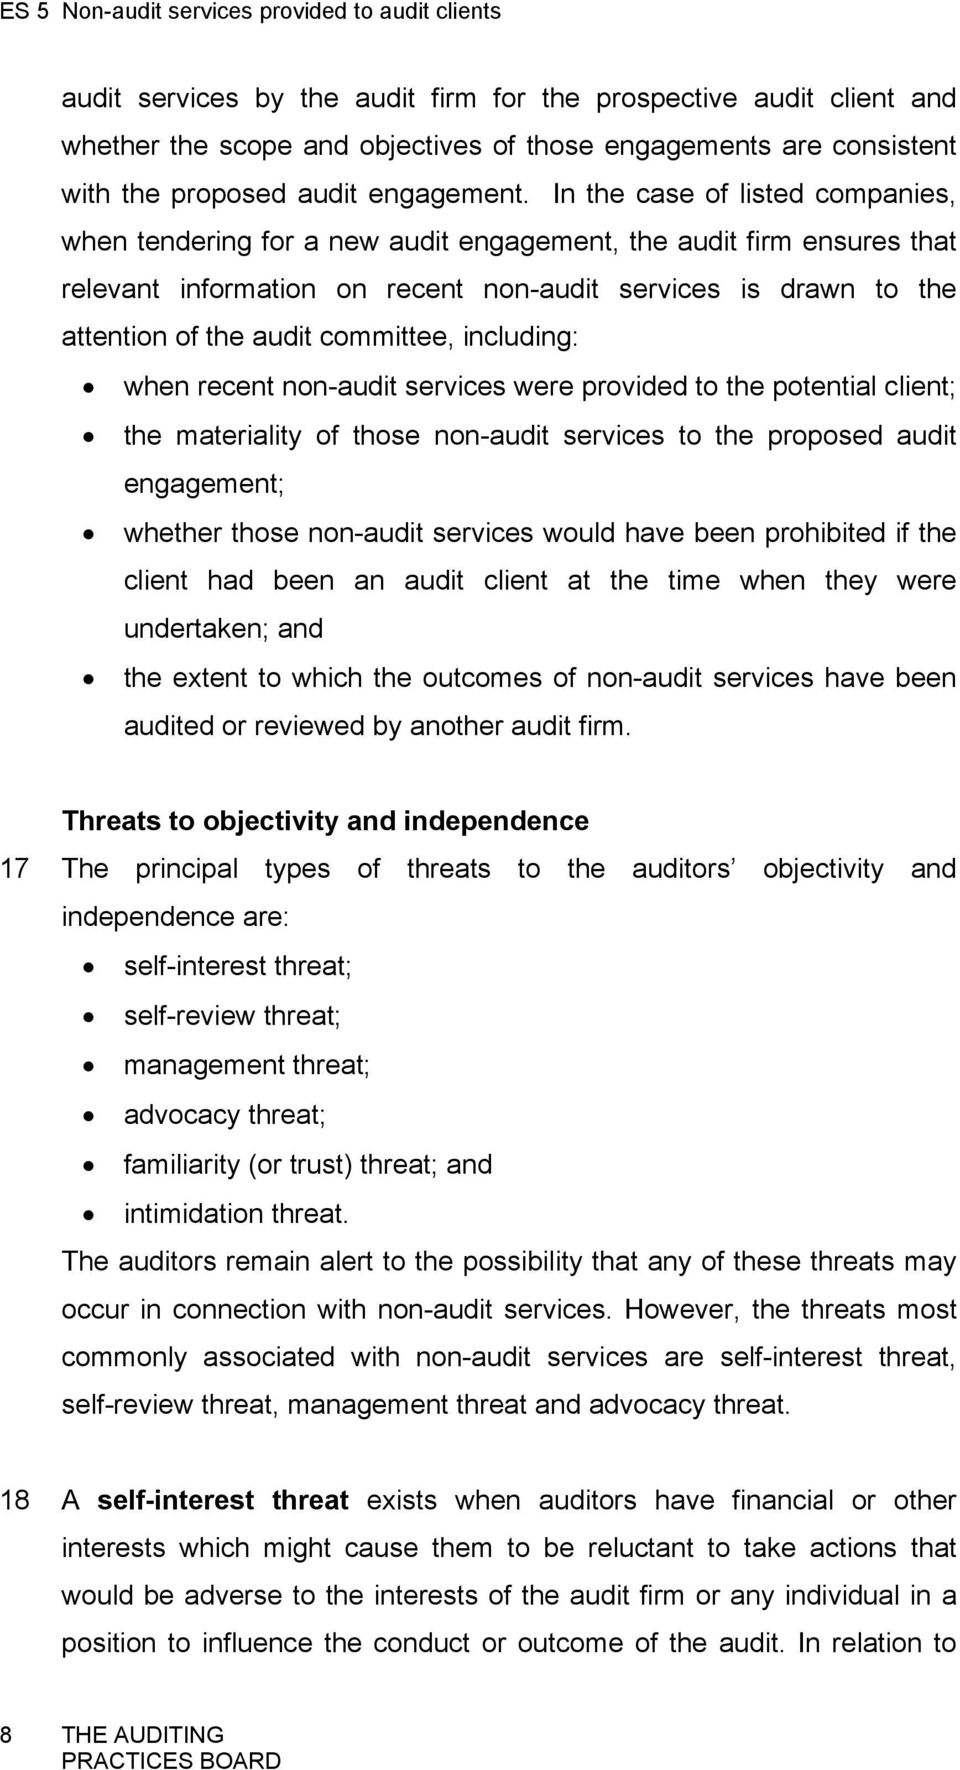 committee, including: when recent non-audit services were provided to the potential client; the materiality of those non-audit services to the proposed audit engagement; whether those non-audit